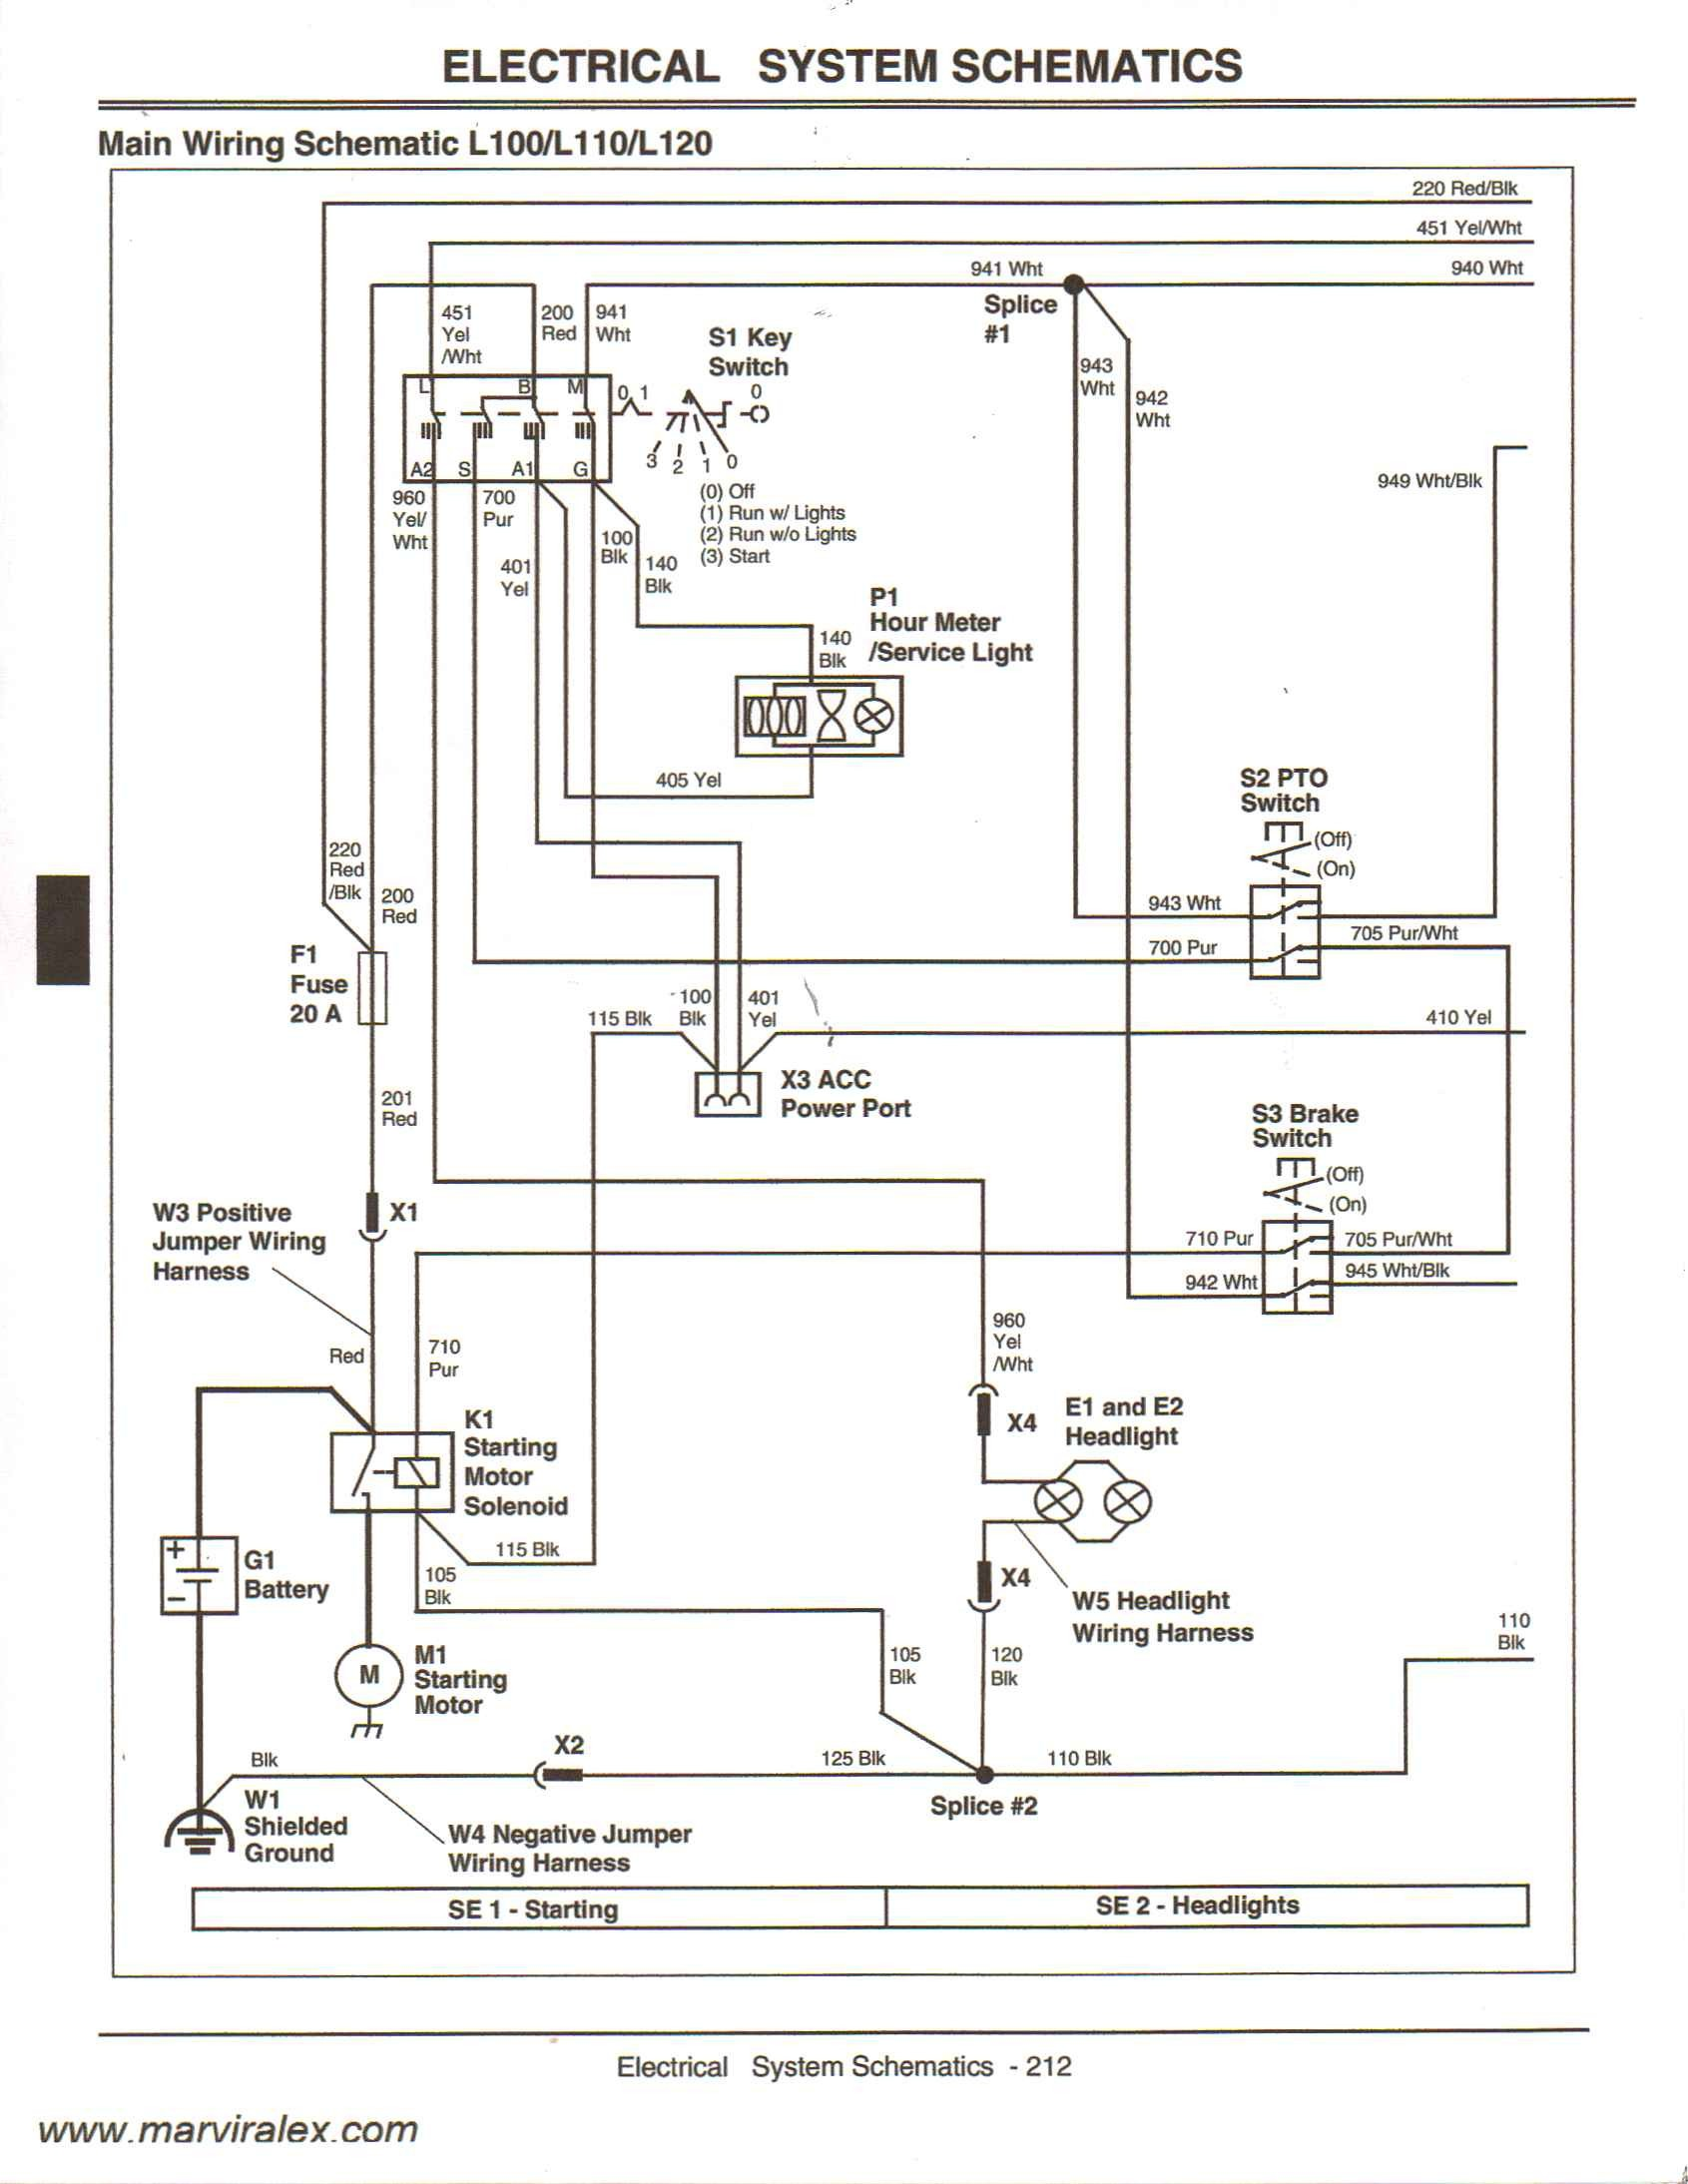 John Deere Lx255 Wiring Schematic - Wiring Diagrams Hidden on